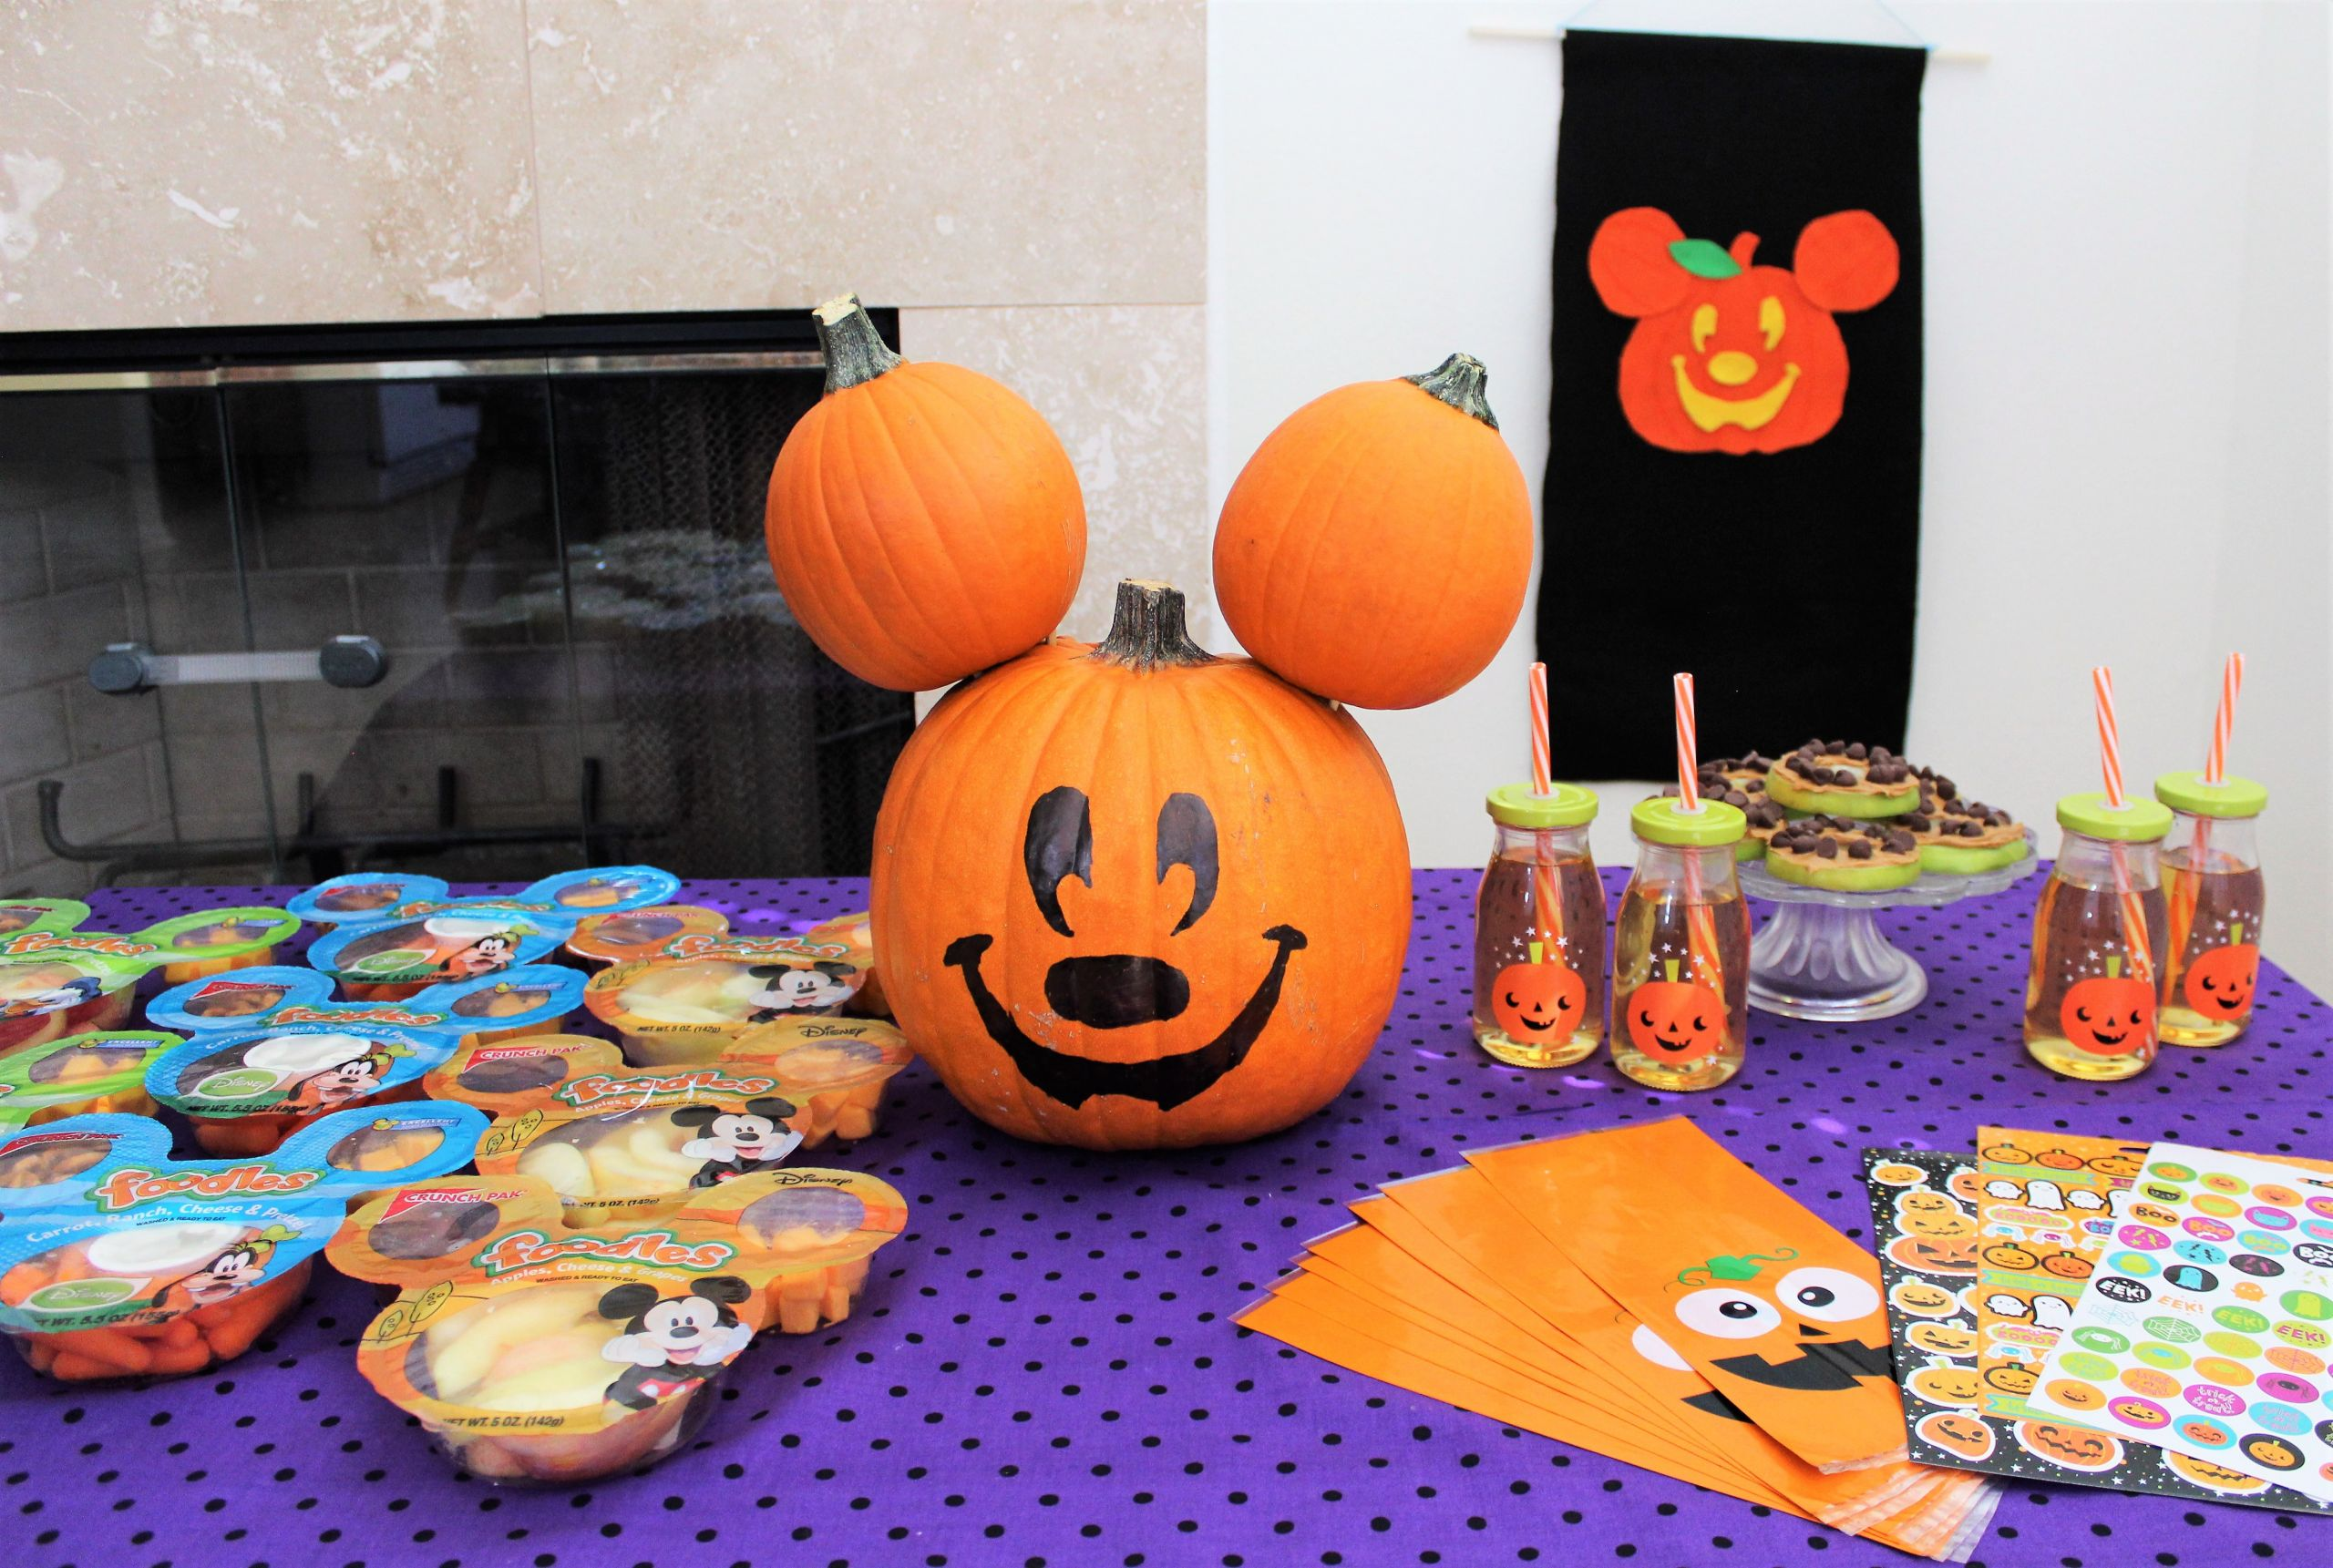 Mickey Mouse Halloween Party Ideas  7 Steps to Throwing the Perfect Mickey Themed Halloween